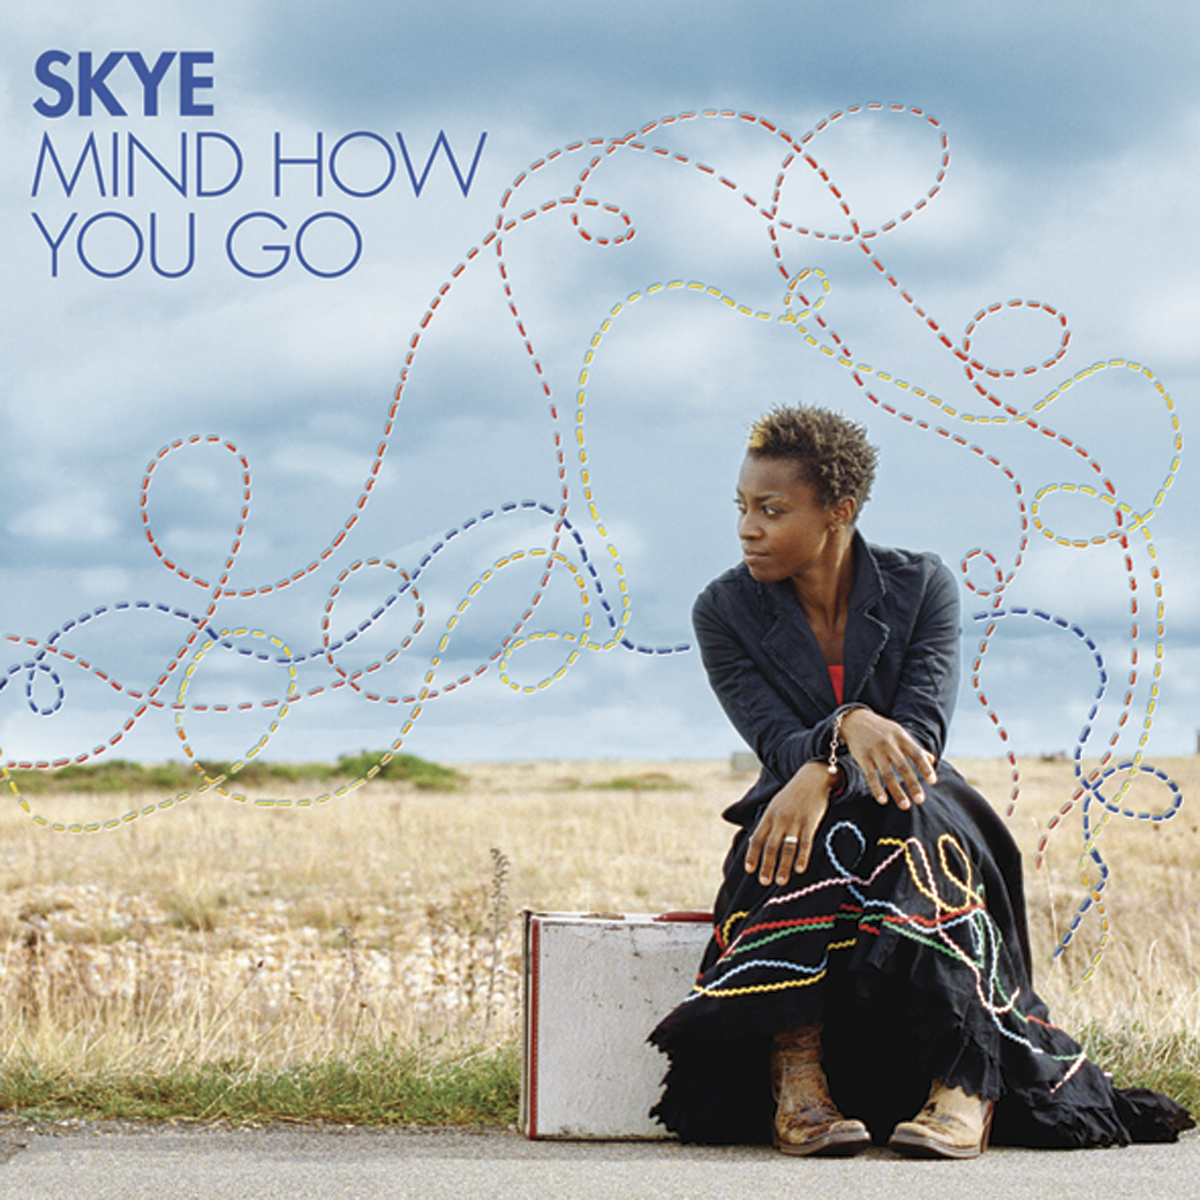 Skye, Mind How You Go album cover Zakee Shariff (illustration) & Frank Bauer (photo), 2006